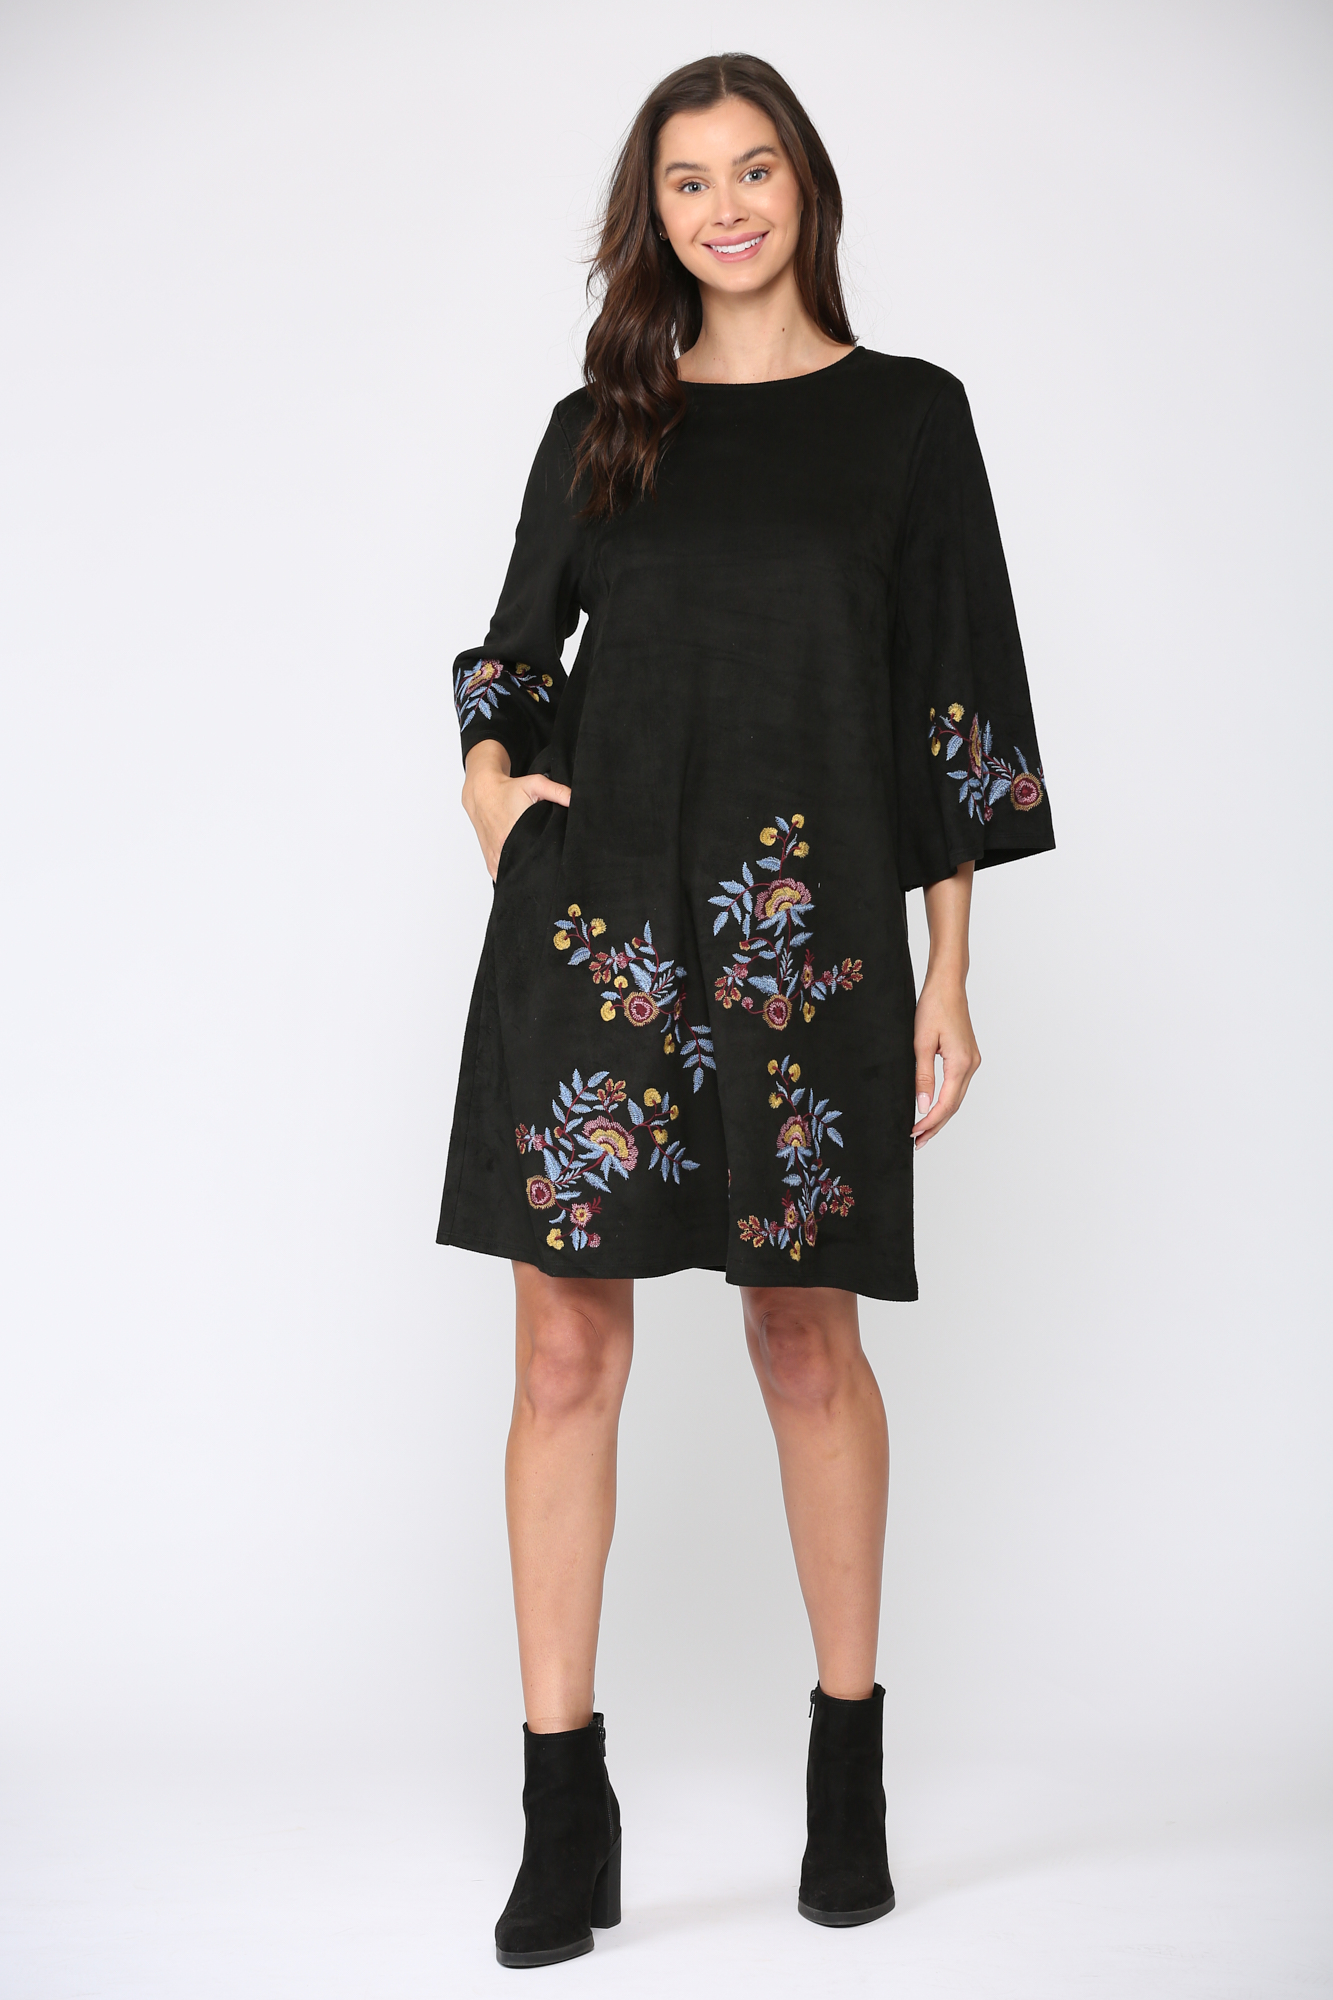 Avery Dress - Black floral - Front